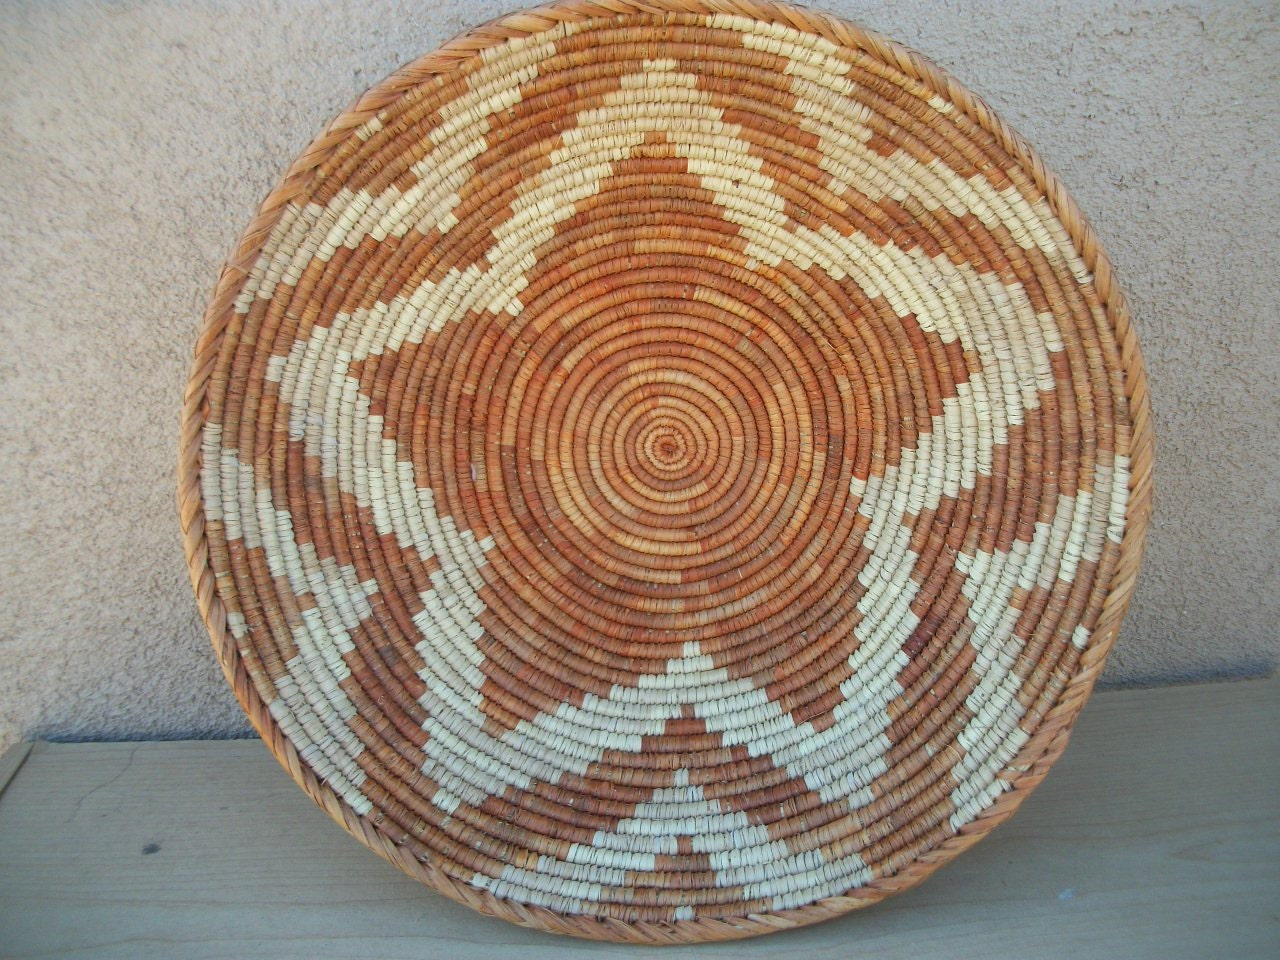 "Basket Rust & Burnt Orange Natural Fiber Star Pattern Hand Woven Grass Coil Extra Large 16 1/2"" x 5 1/2"" - South American"